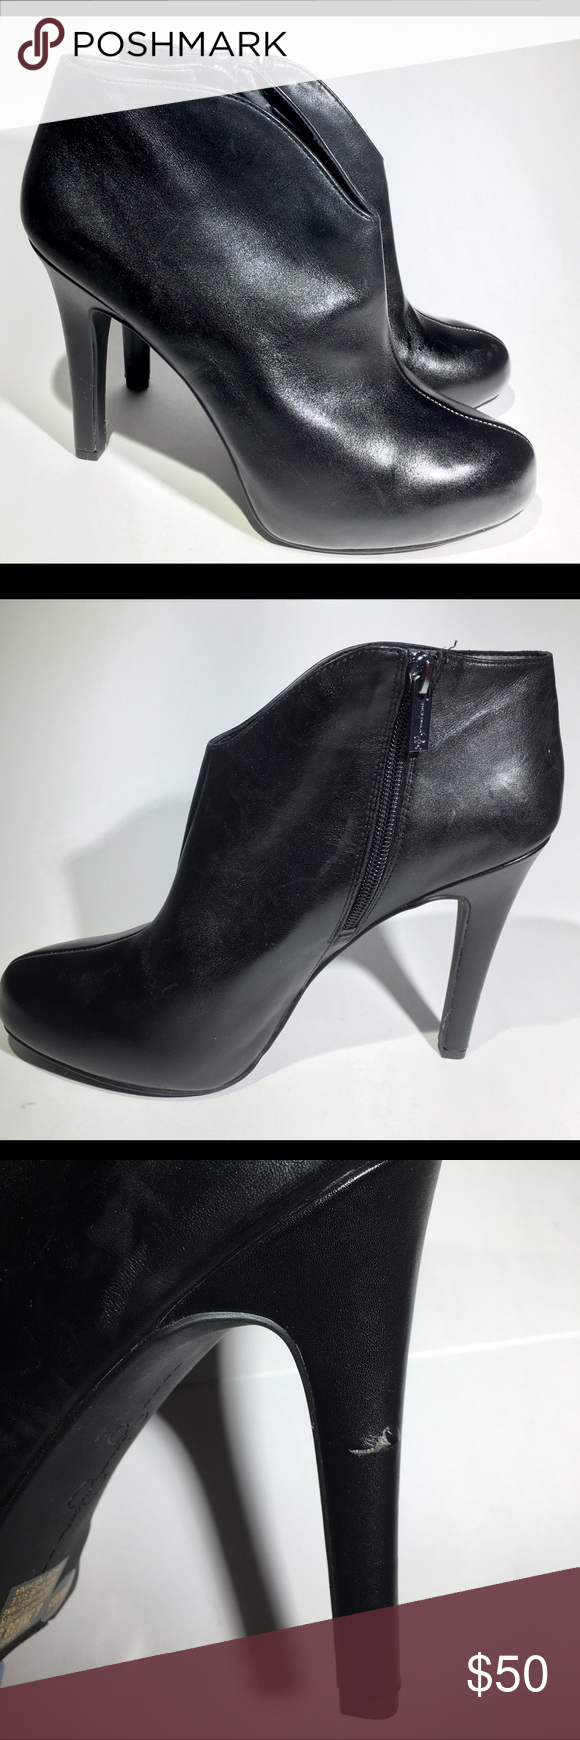 Jessica Simpson Adana Black Heels Size 9 Comes Without Tags Or Box Soft Blemishes On Heels Due To Shelf Life Color Black Tan In Black Heels Kitten Heel Pumps Bootie Boots